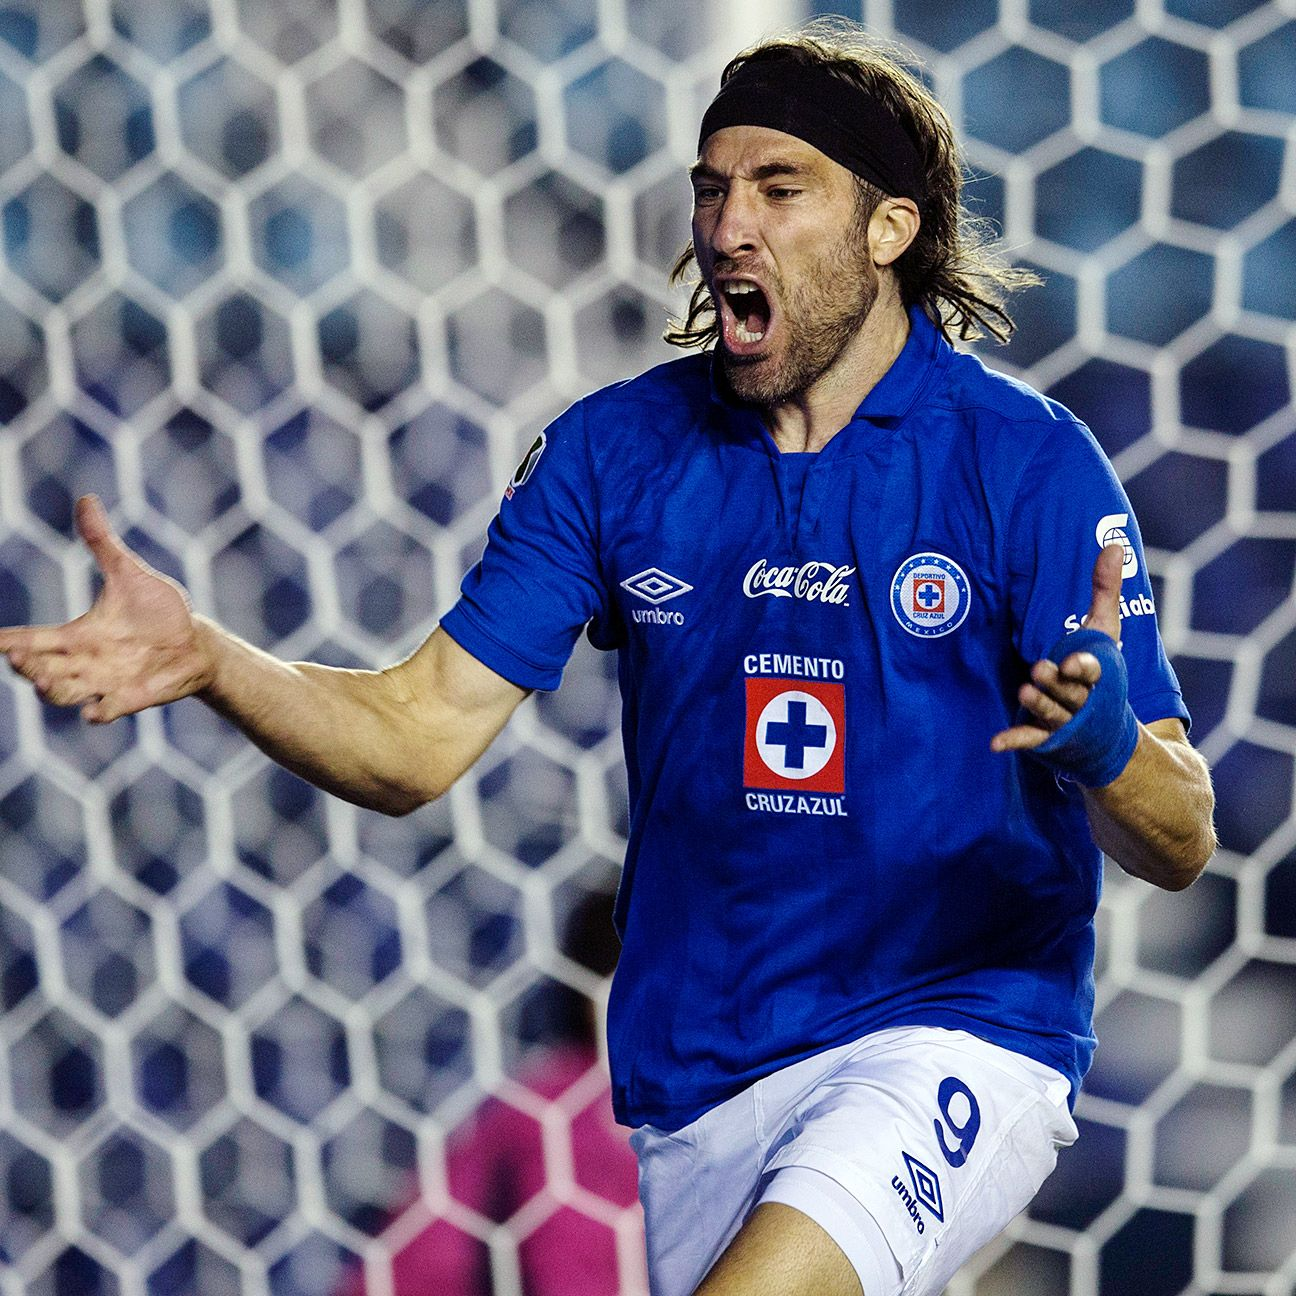 Cruz Azul's Liguilla hopes stayed within reach thanks to Mariano Pavone's goal versus Leon.